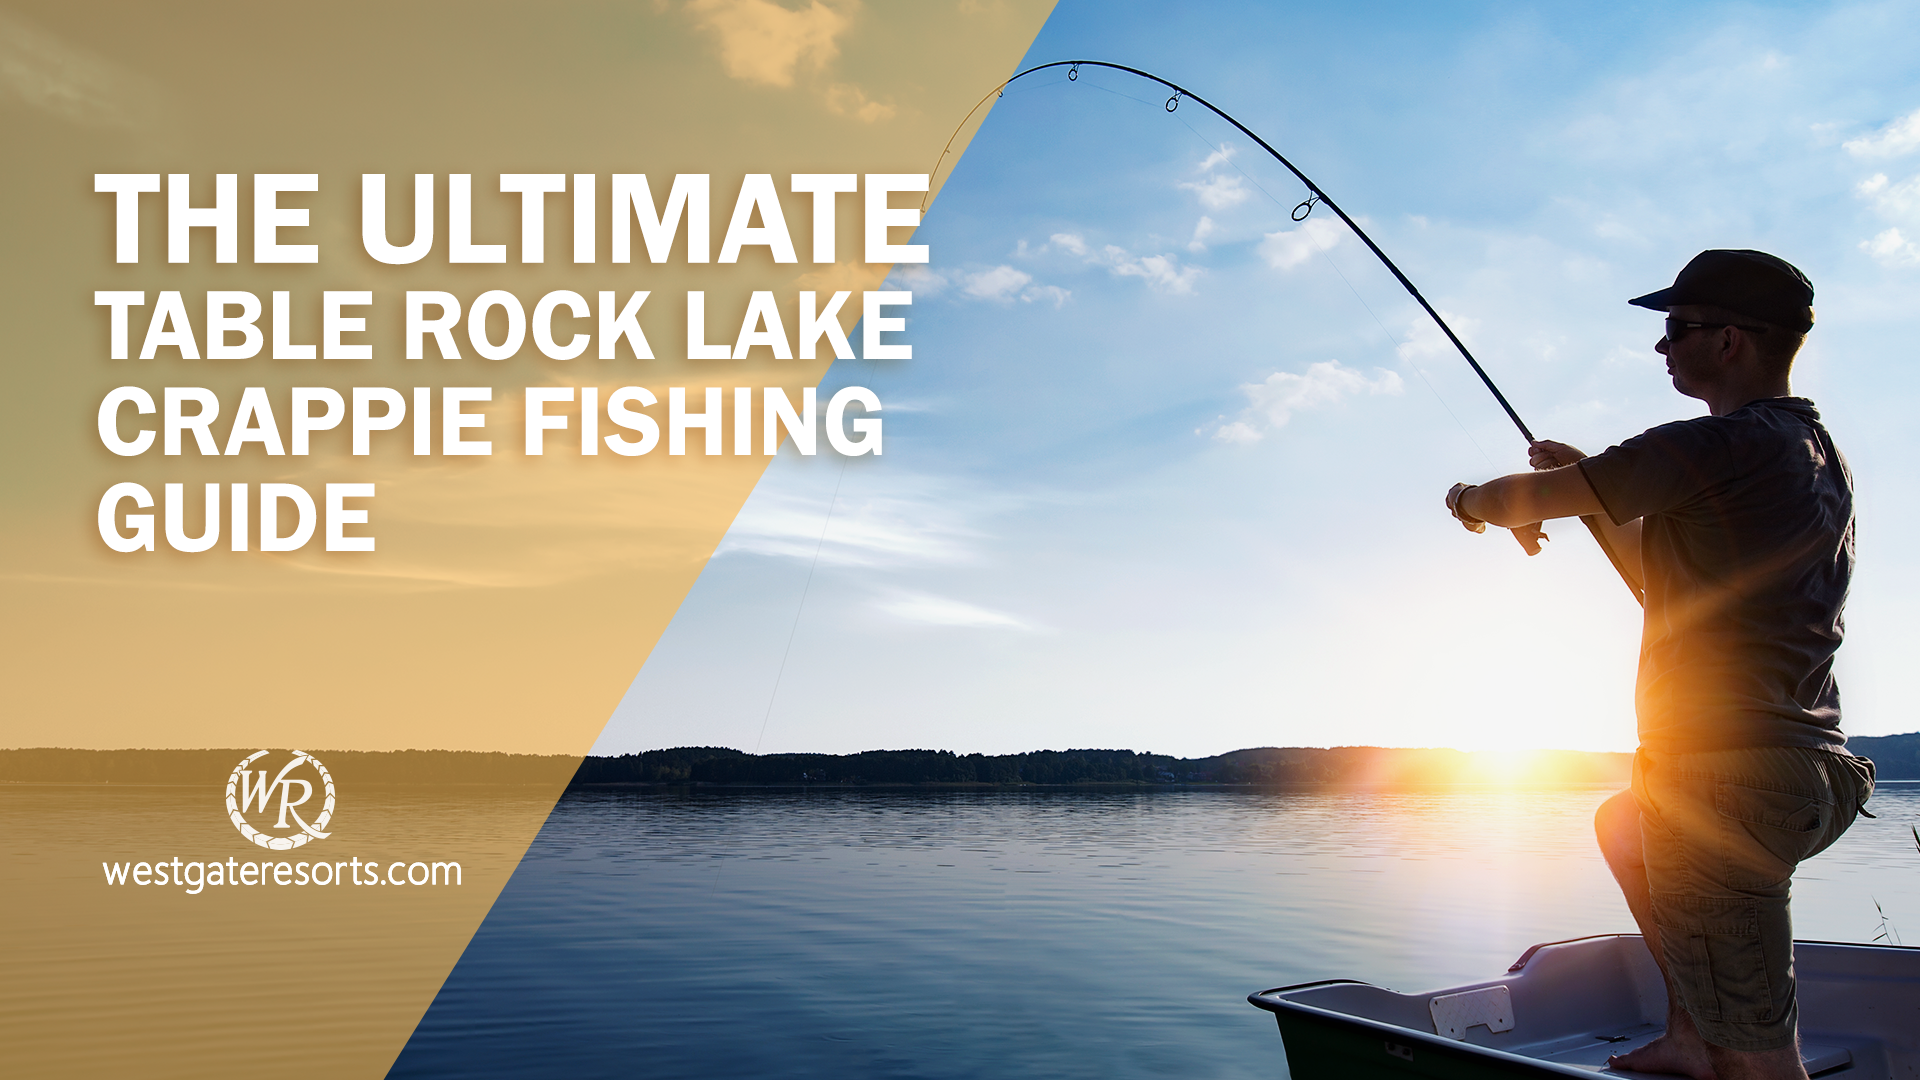 The Ultimate Table Rock Lake Crappie Fishing Guide | Table Rock Lake Fishing Tips | Westgate Resorts